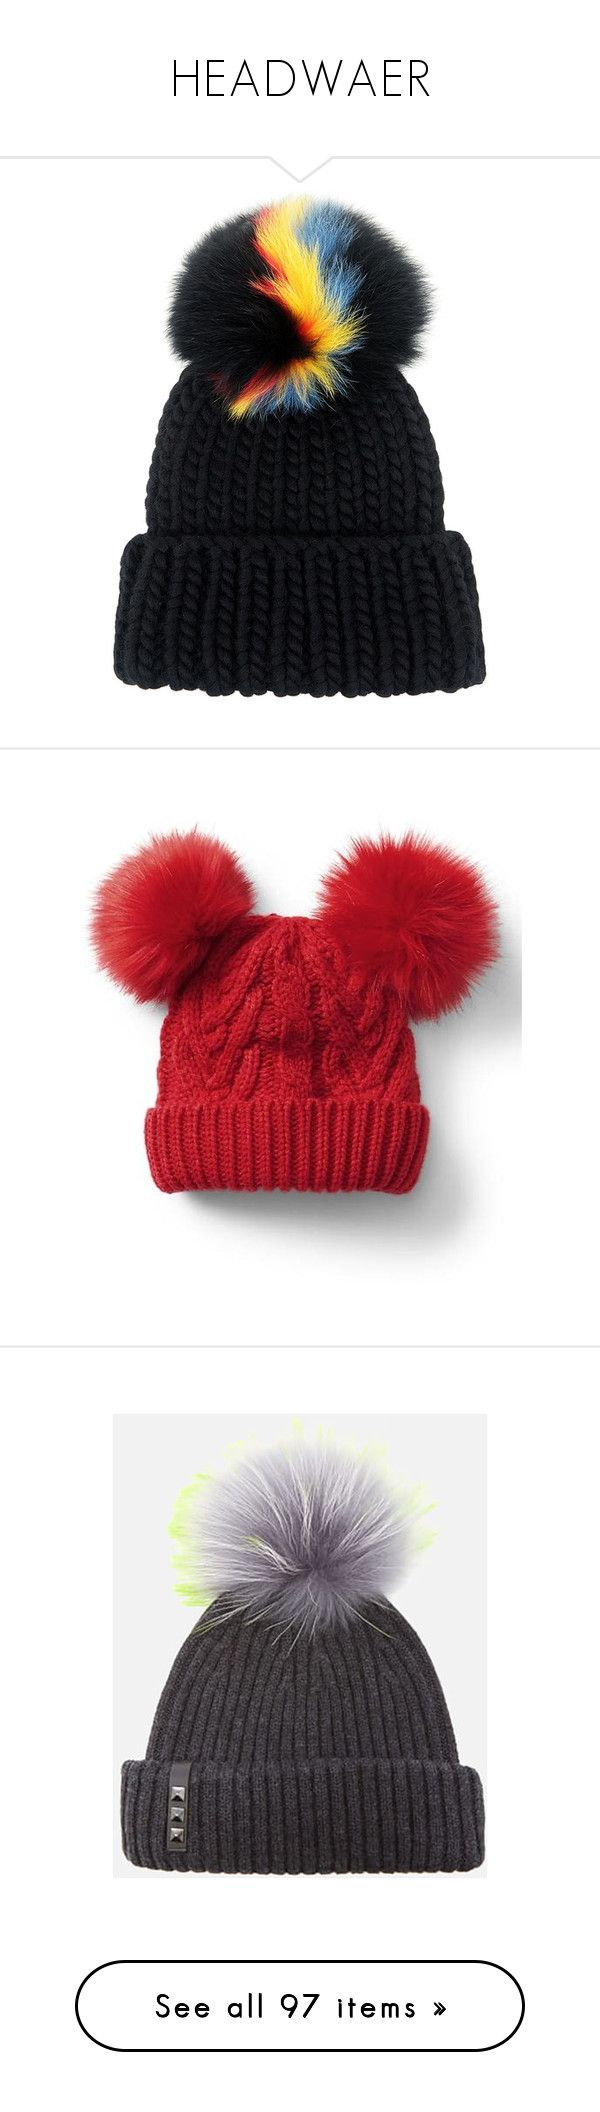 """""""HEADWAER"""" by fashionbavyblue ❤ liked on Polyvore featuring accessories, hats, beanie, pom pom hats, fur pom pom hat, colorful hats, fur beanie, fur beanie hat, headwear and modern red"""